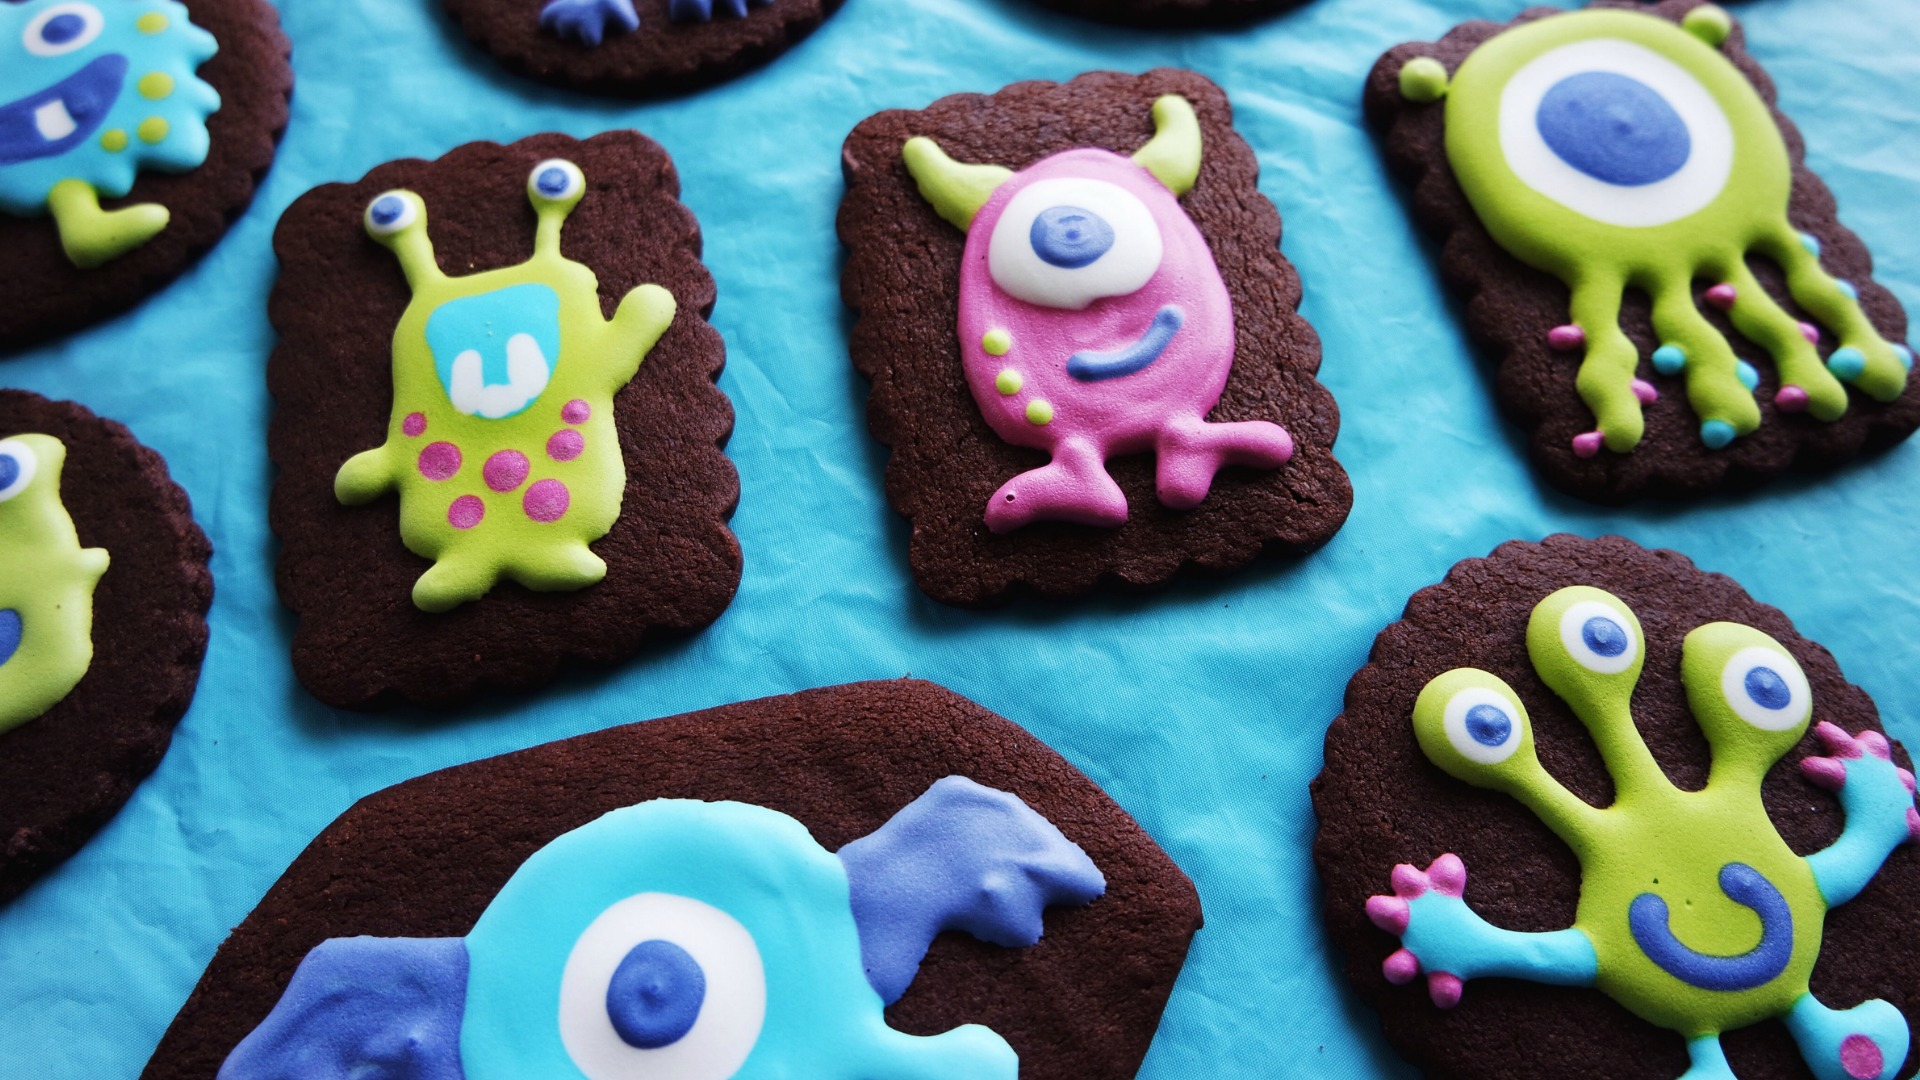 13 Monster Party Favors All Kids Will Love // Fun ideas for monster birthday party favors you can make or buy and cute bags and boxes to put them in. #monsterparty #monsterbirthday